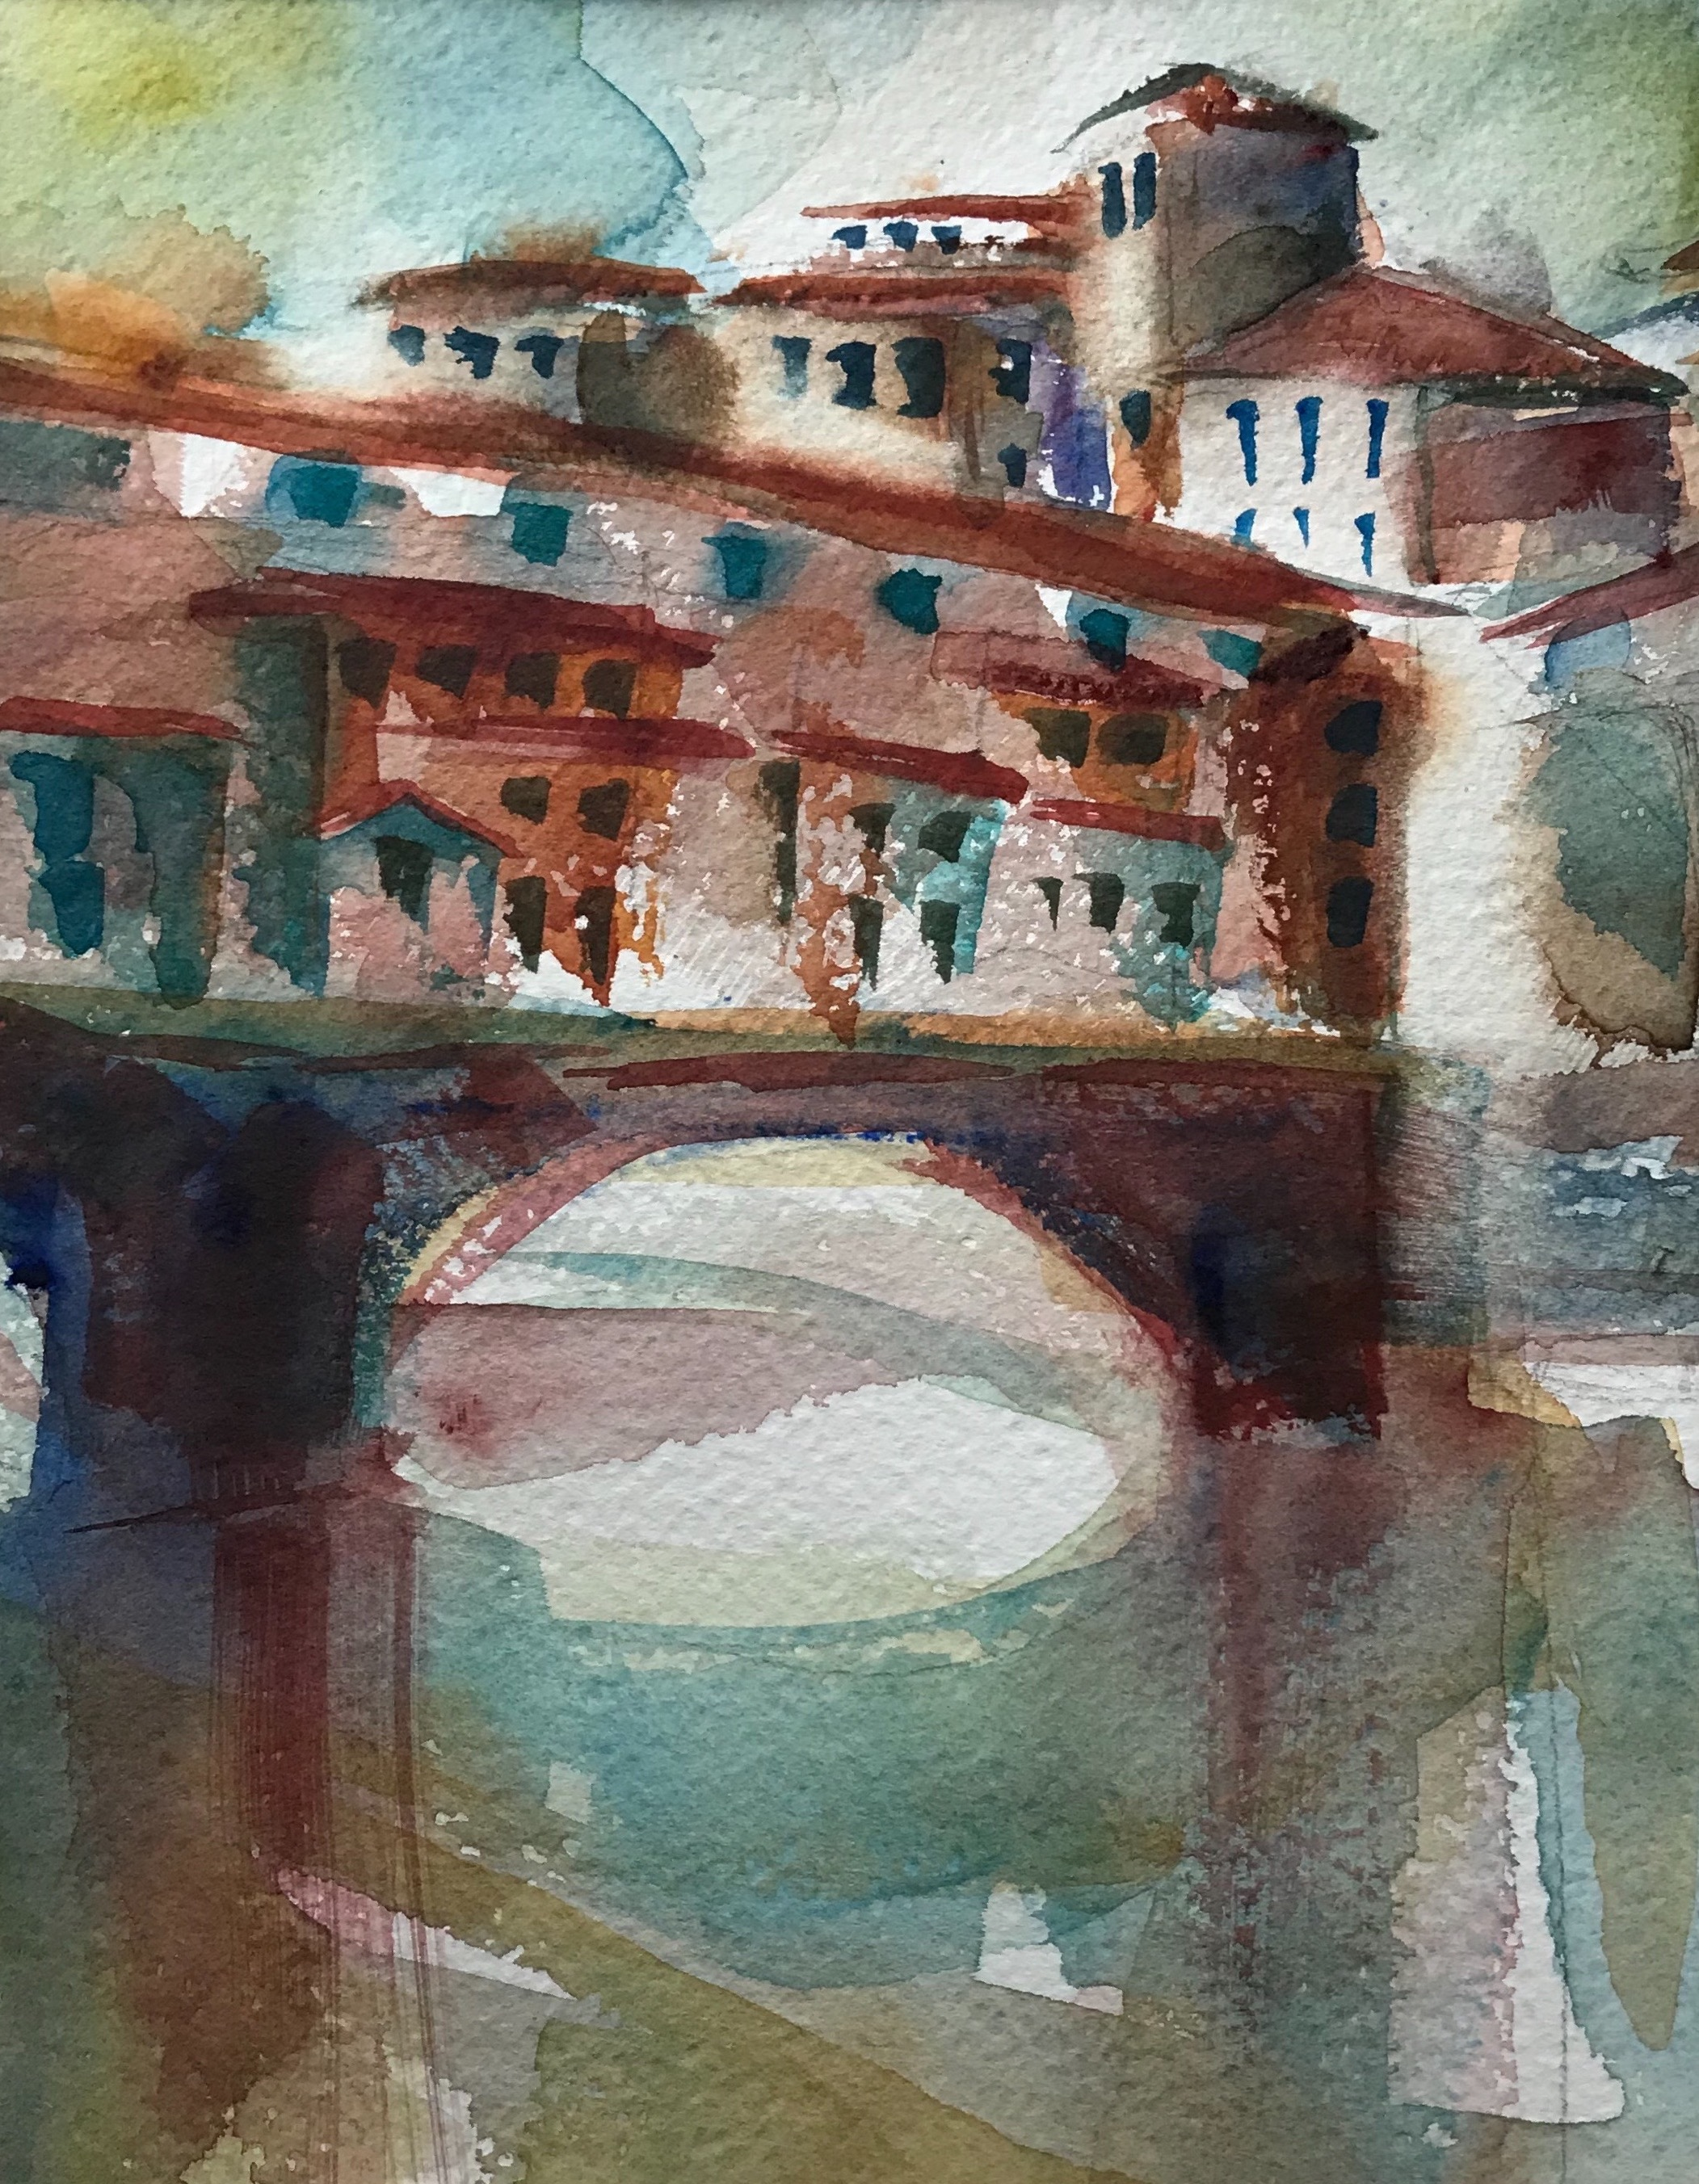 Reflections of the Ponte Vecchio